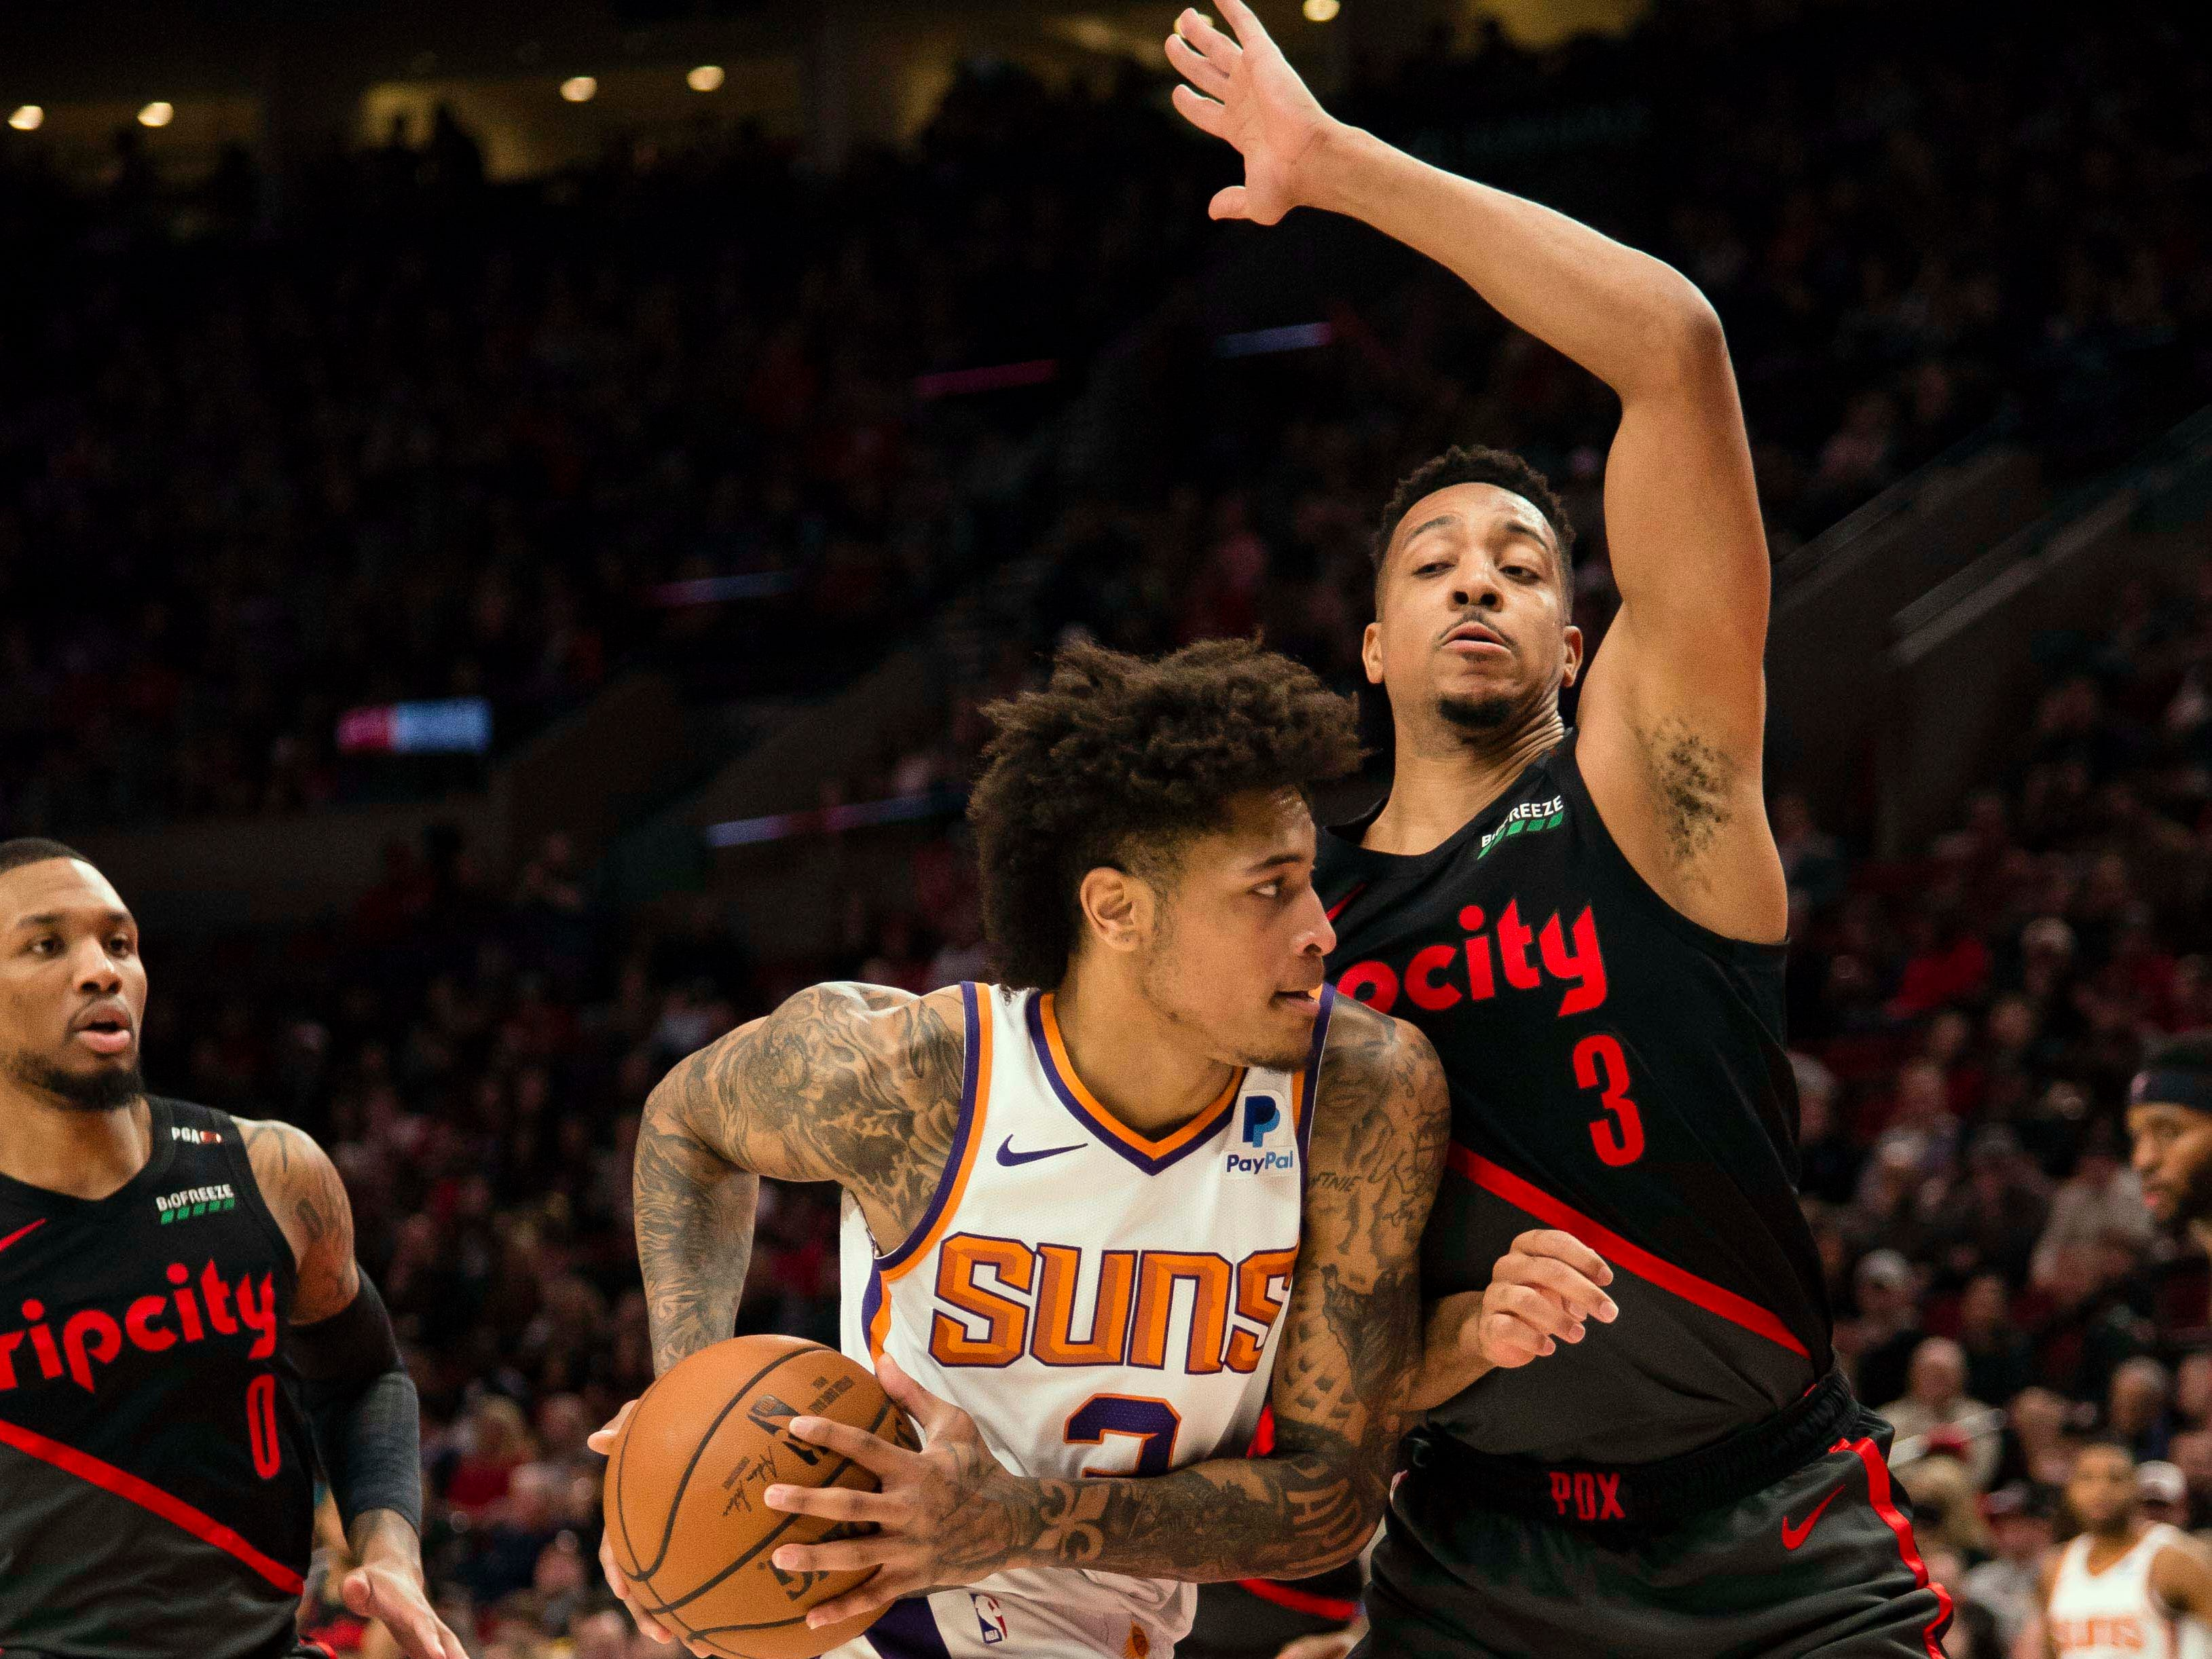 Mar 9, 2019; Portland, OR, USA; Phoenix Suns forward Kelly Oubre Jr. (3) drives to the basket against Portland Trail Blazers guard CJ McCollum (3) during the first half at Moda Center.